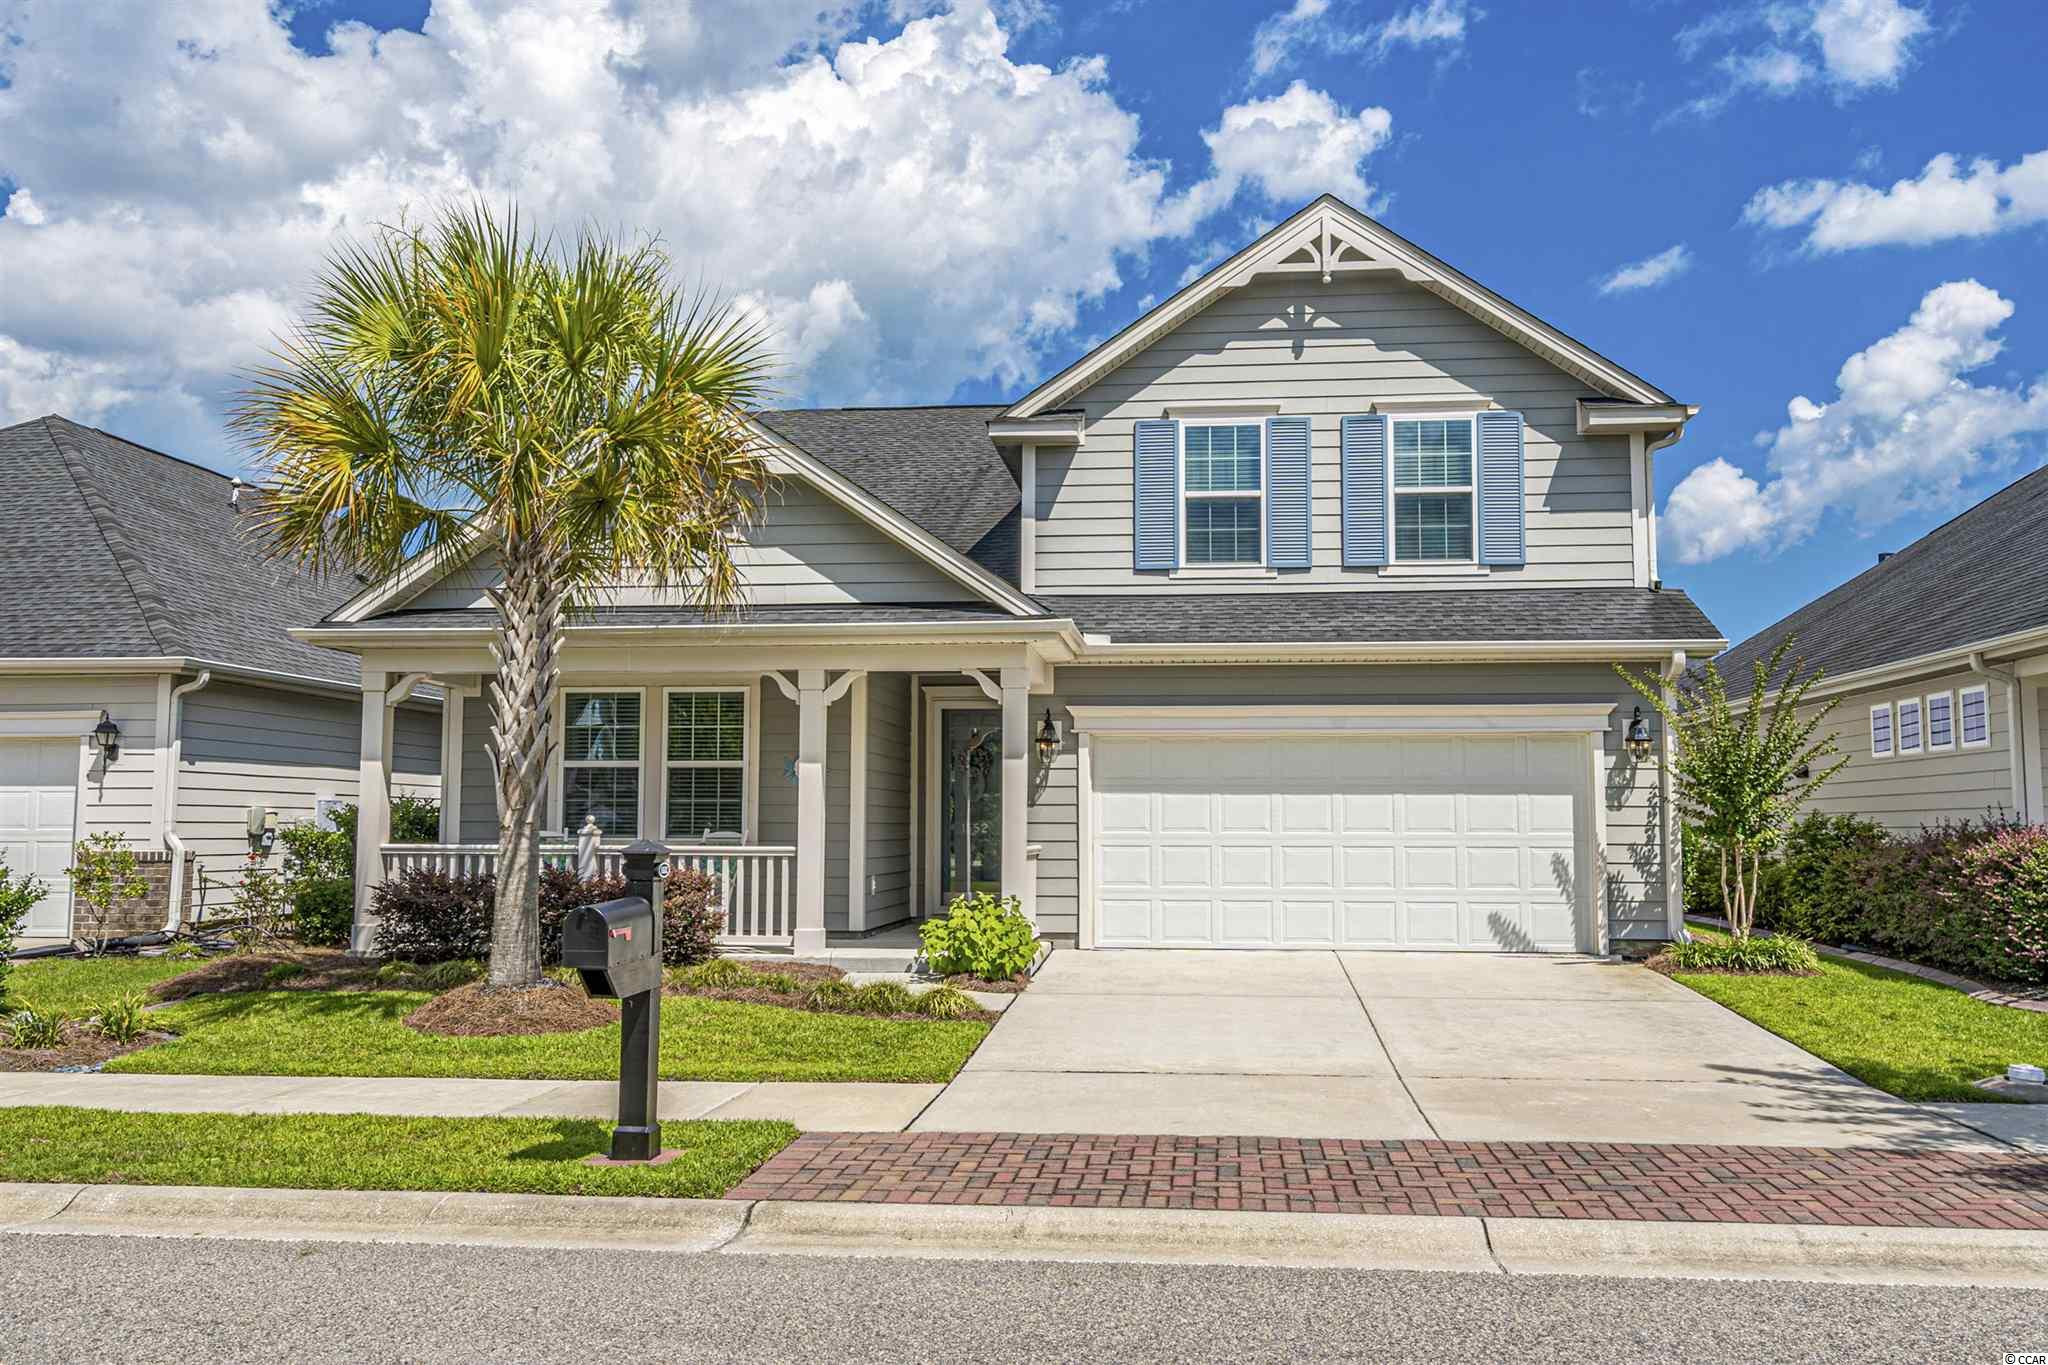 If you are looking to buy the most popular floor plan in the best-selling neighborhood in Myrtle Beach, your search is over! This like new, move-in ready home is located in Market Common, the best address on the Grand Strand. The shops, restaurants, movie theater, grocery store, recreation center, and parks are right down the street. Myrtle Beach State Park and the sandy shores of the Atlantic Ocean and are just a short golf cart ride away. Emmens Park with its outdoor kitchens, fire pits, covered area, putting green and bocce courts is just a short walk down the street, and the resort pool and amenity complex with the new clubhouse is only a few blocks away.  Best of all, you will be living in a neighborhood with a real sense of community and fellowship. Call today for more information, and see this home before a great opportunity slips away.  Bonus room is being used as 4th bedroom.  It has a walk-in closet, and a full bath, but no door to stairway.  Owners want to lease the property back until April 30, 2022.